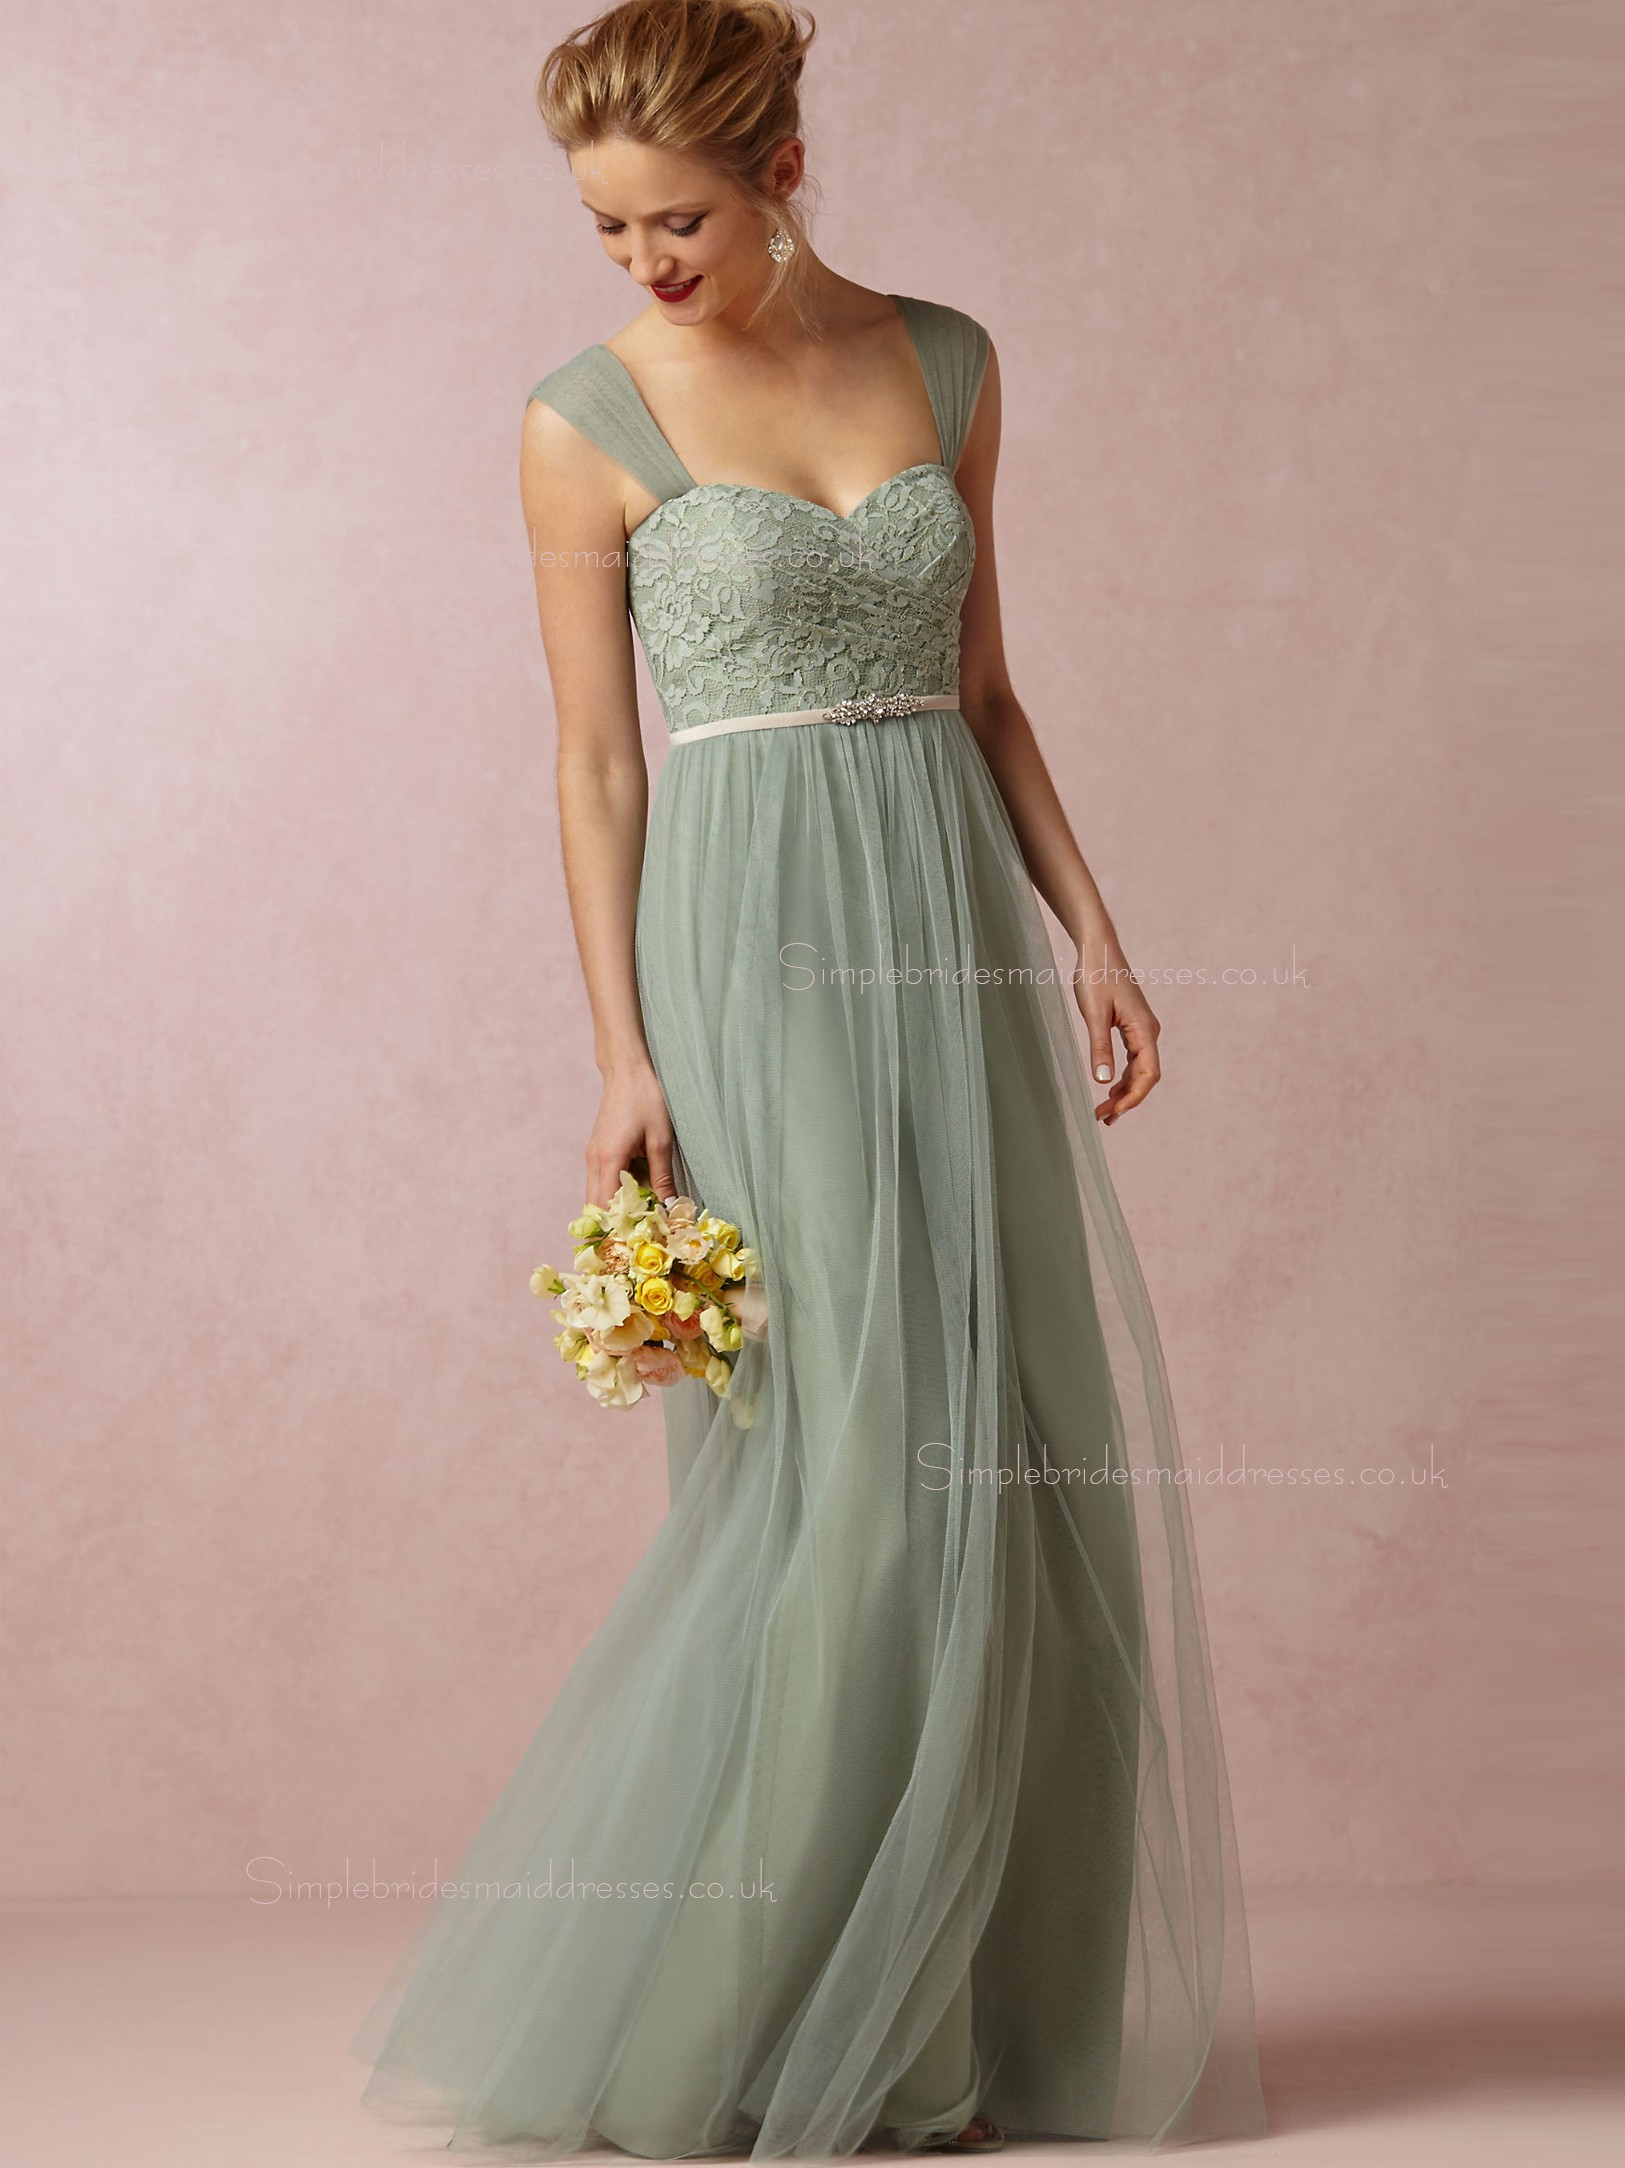 bridesmaid dress uk